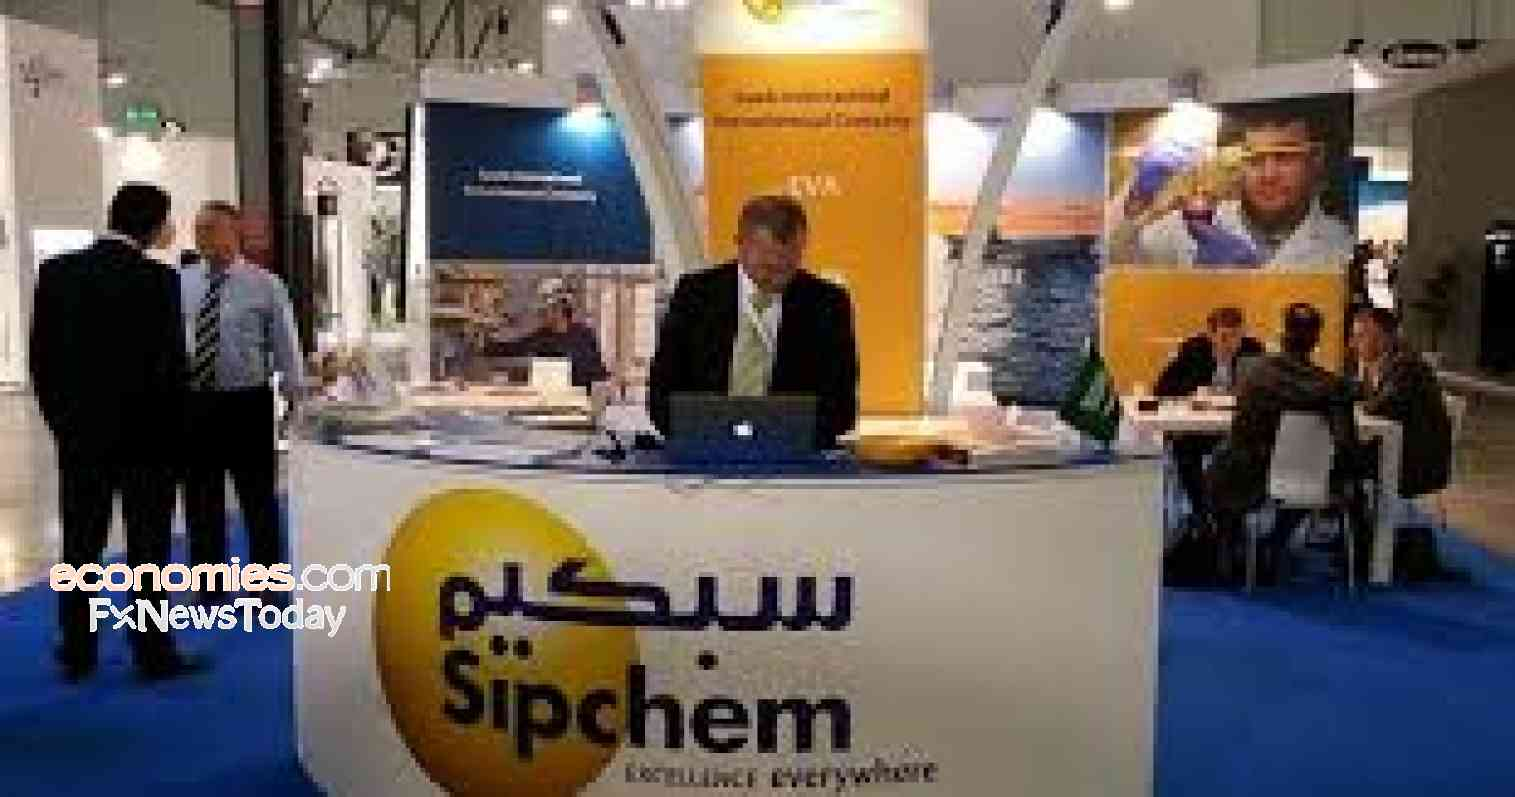 Sipchem's Diol plant to shut down for scheduled maintenance